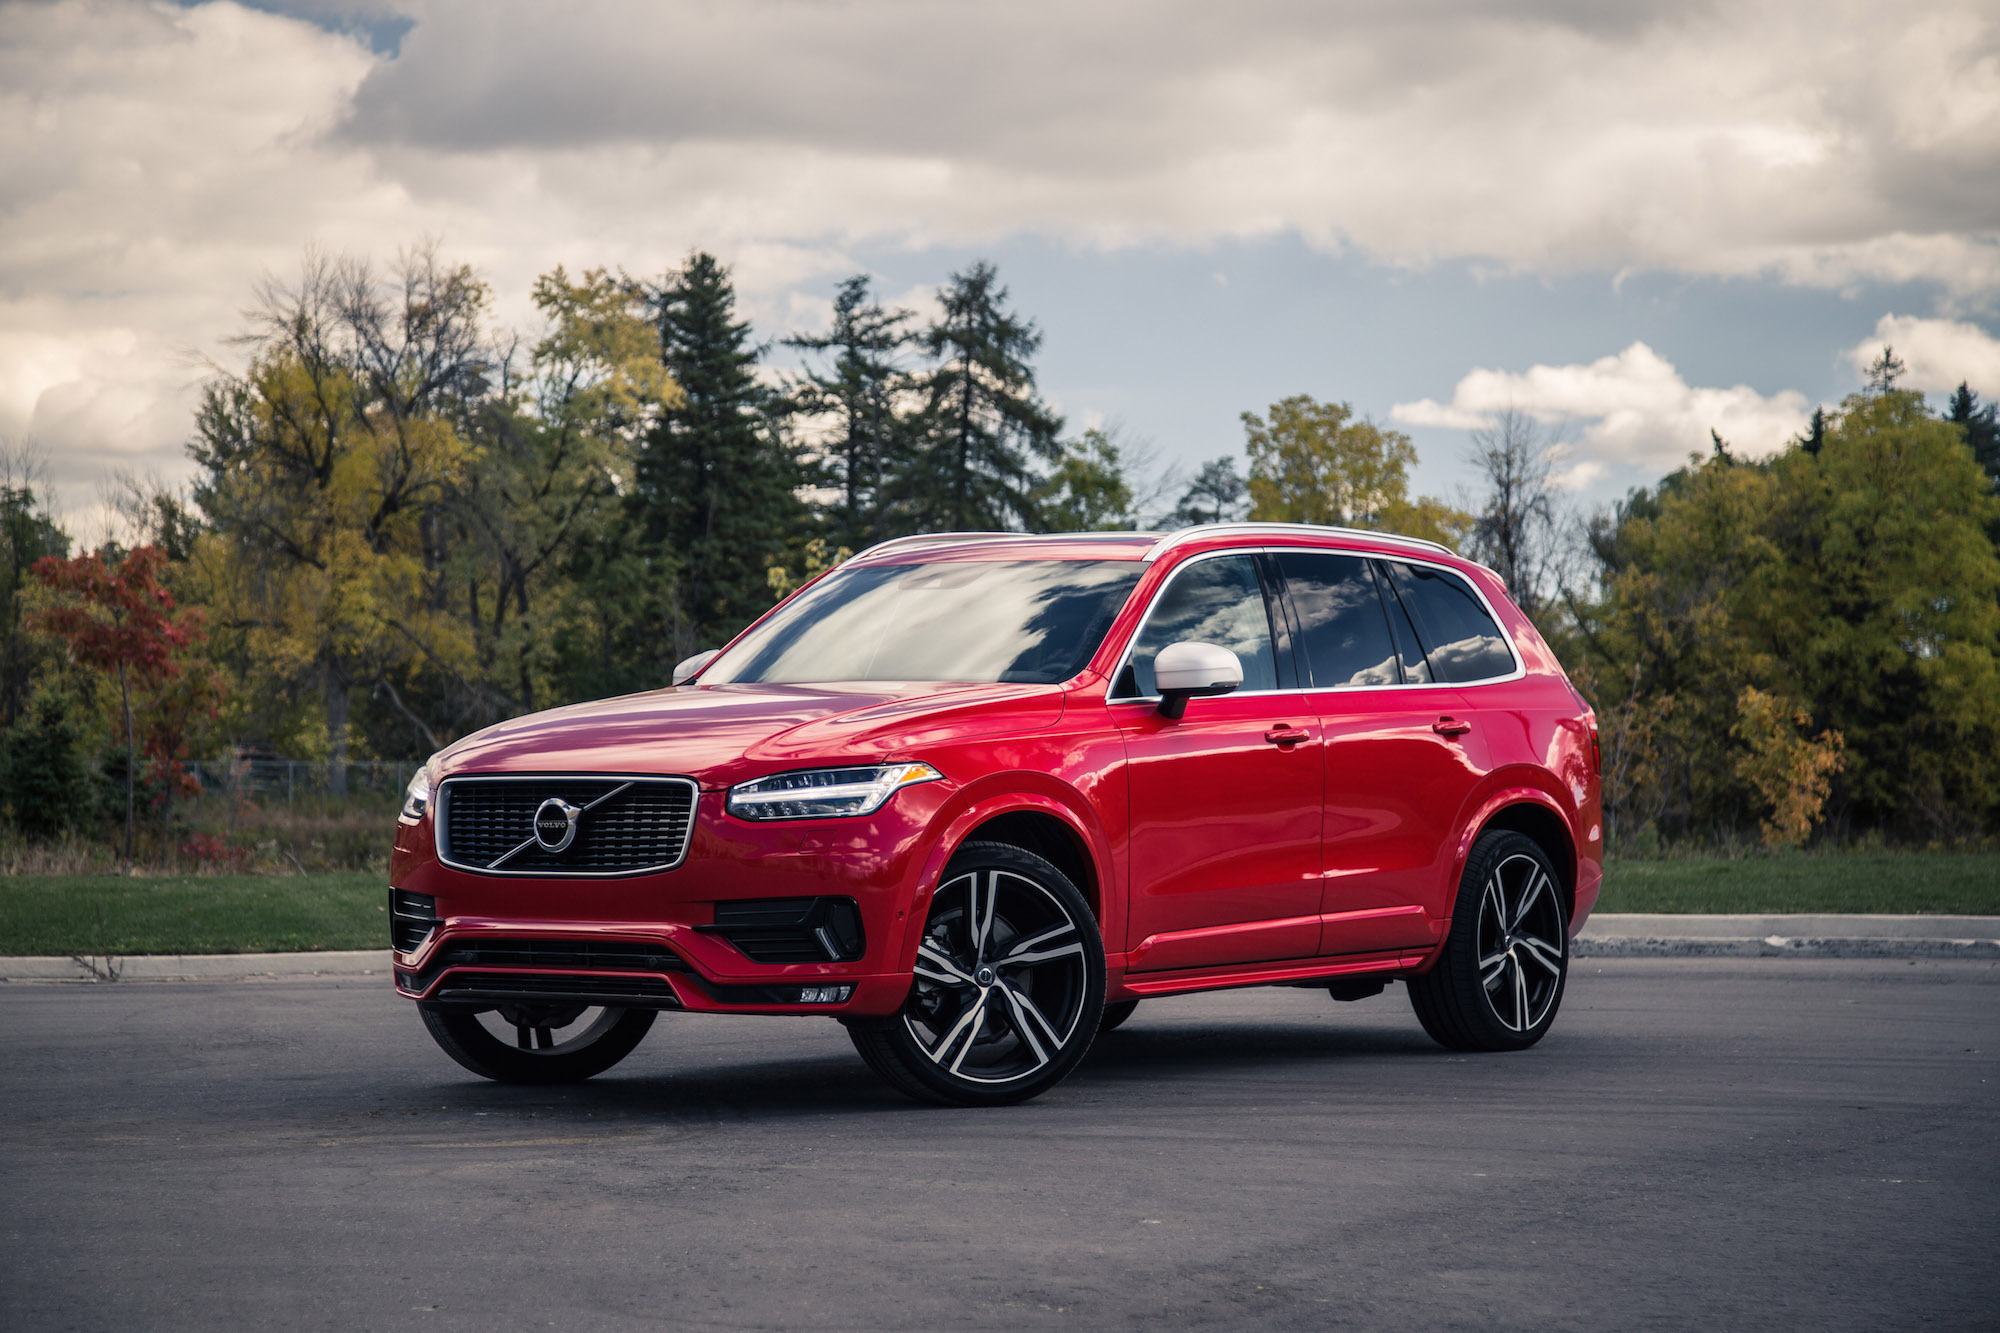 Review: 2016 Volvo XC90 T6 R-Design | Canadian Auto Review